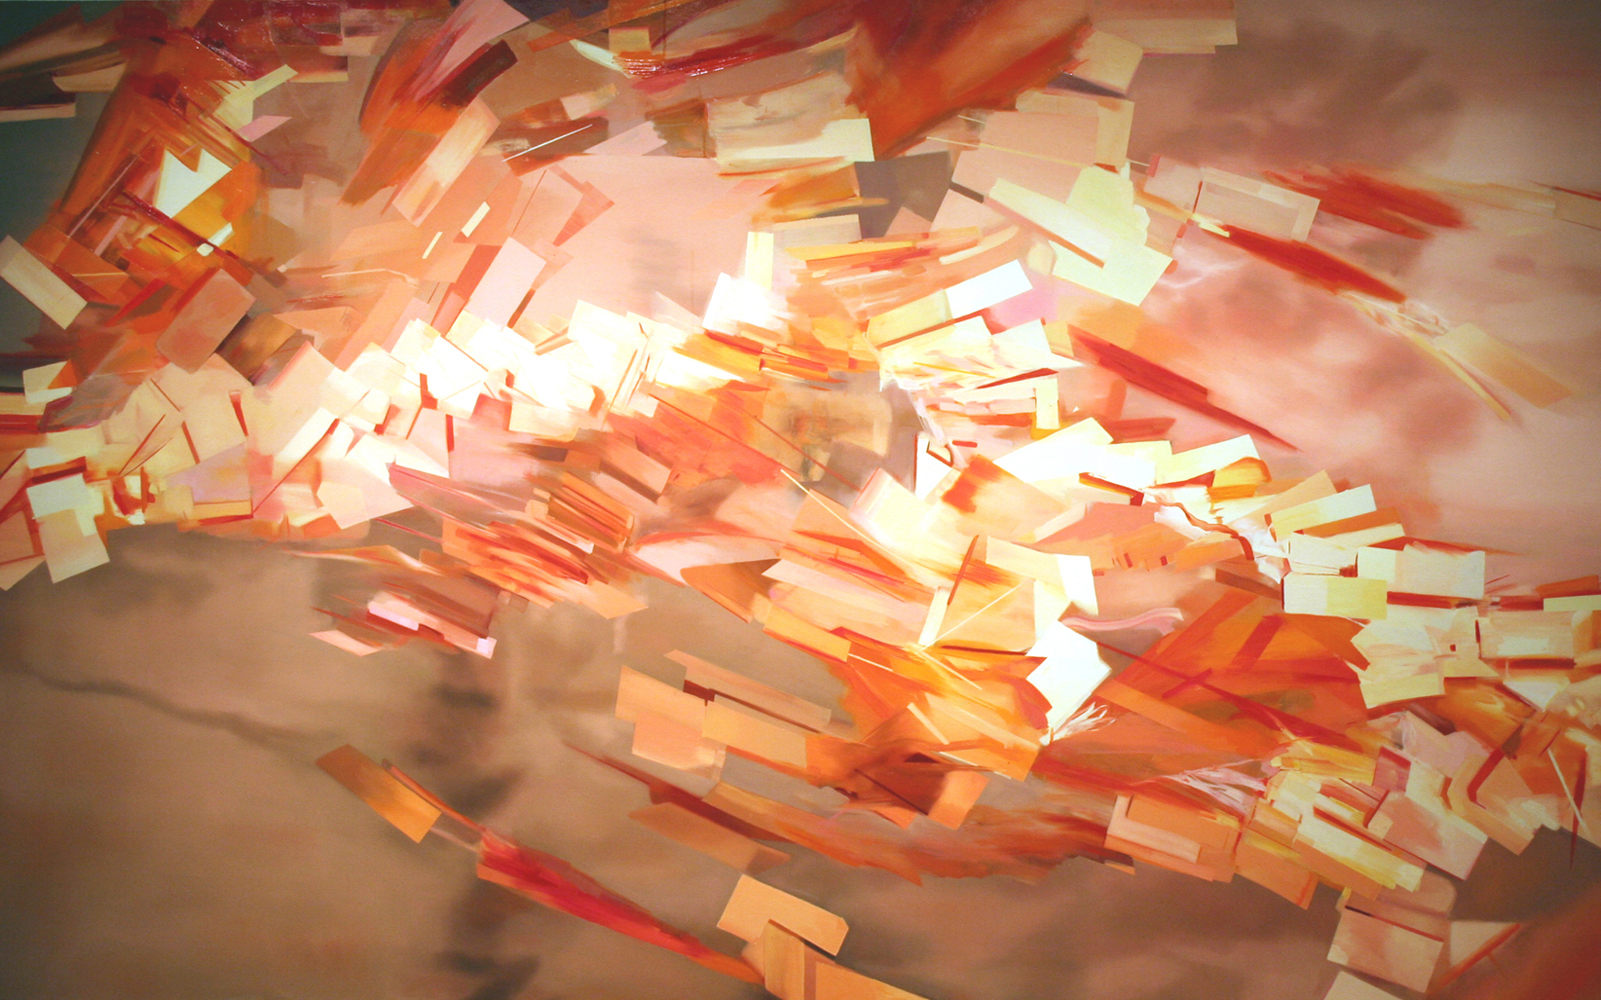 Thuy-Van Vu, For Thich Quang Duc (1,000 Tags), 2006, oil on canvas, 61 x 96 inches, price on request